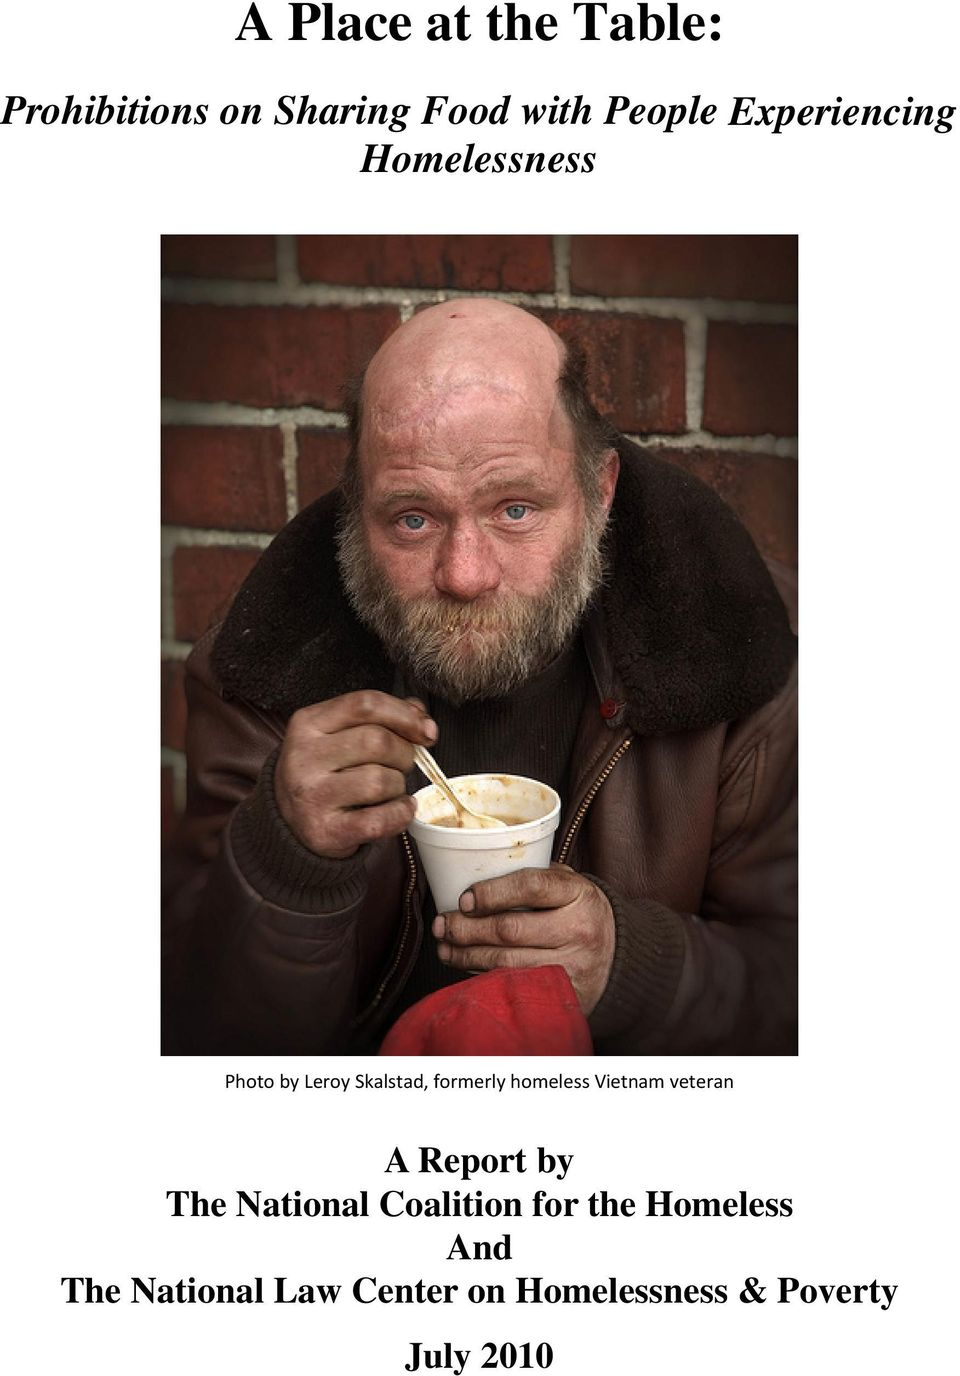 homeless Vietnam veteran A Report by The National Coalition for